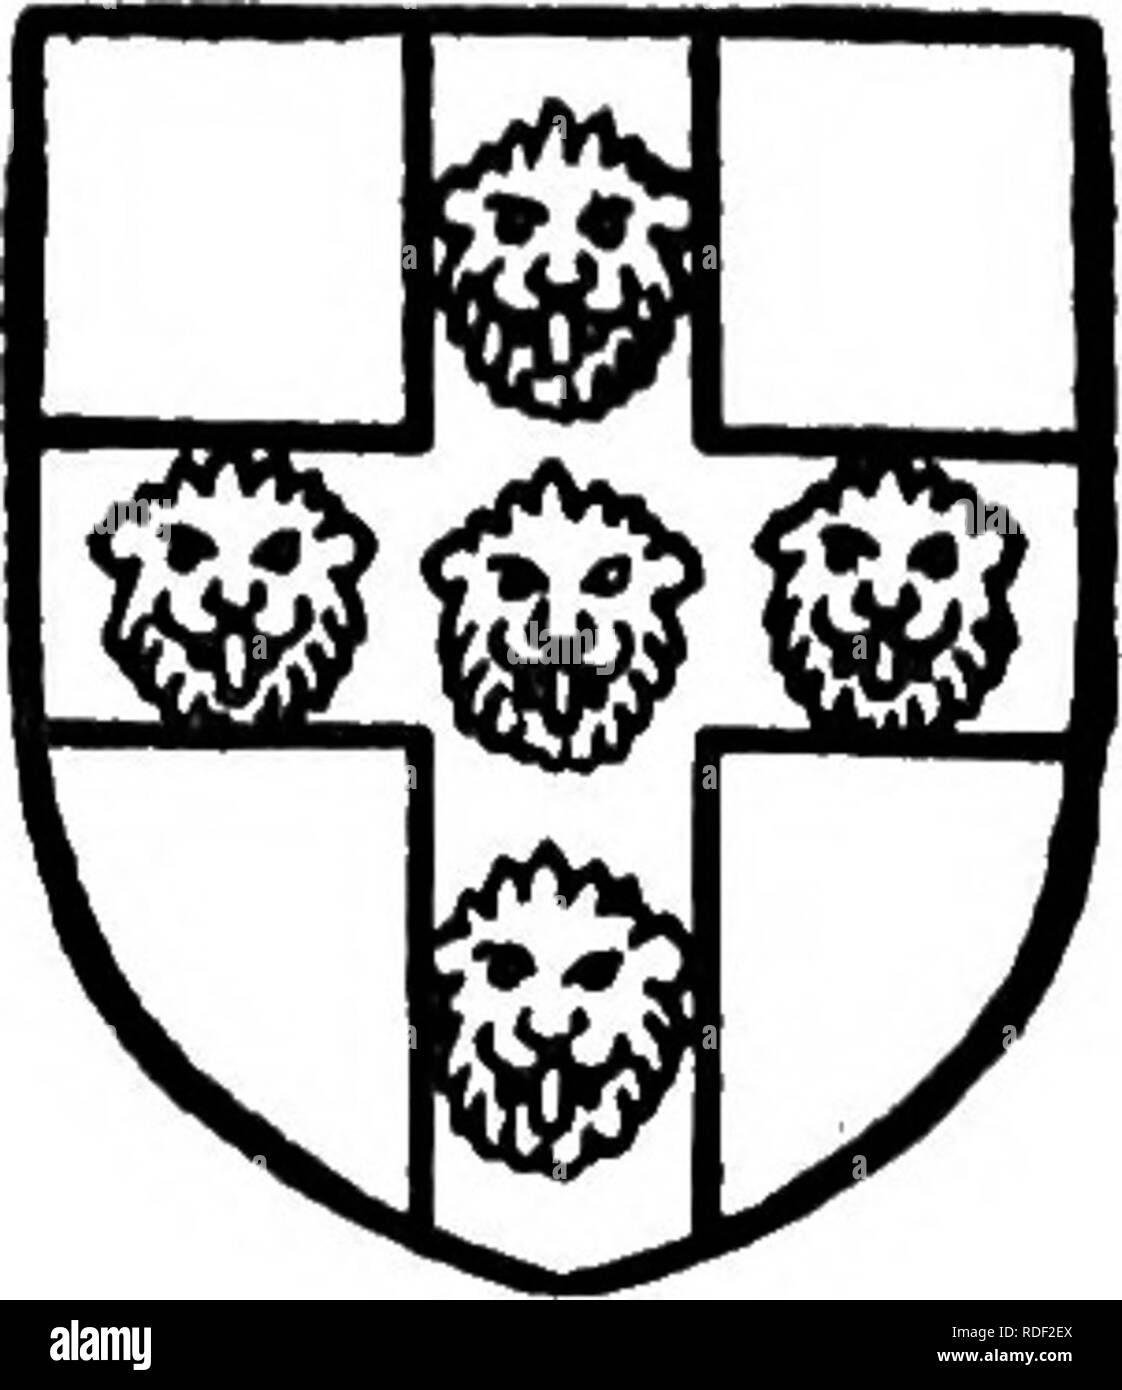 """. The Victoria history of the county of Hertford. Natural history. Bishopric of London. Gules two sivords of St. Paul crossed saltircwise. now blocked, has a flat four-centred arch, and there is a similar arch in the partition inside. Two other doorways have flat Tudor arches of oak, similar to the one at the hall. In the reign of Edward the Confessor MANORS the manor of ALBURT was held of Archbishop Stigand by Siward."""" After the Conquest it was acquired by the Bishop of London ^^ and became part of the barony of Stortford be- longing to the Bishops of London, of whom it was held by knigh - Stock Image"""